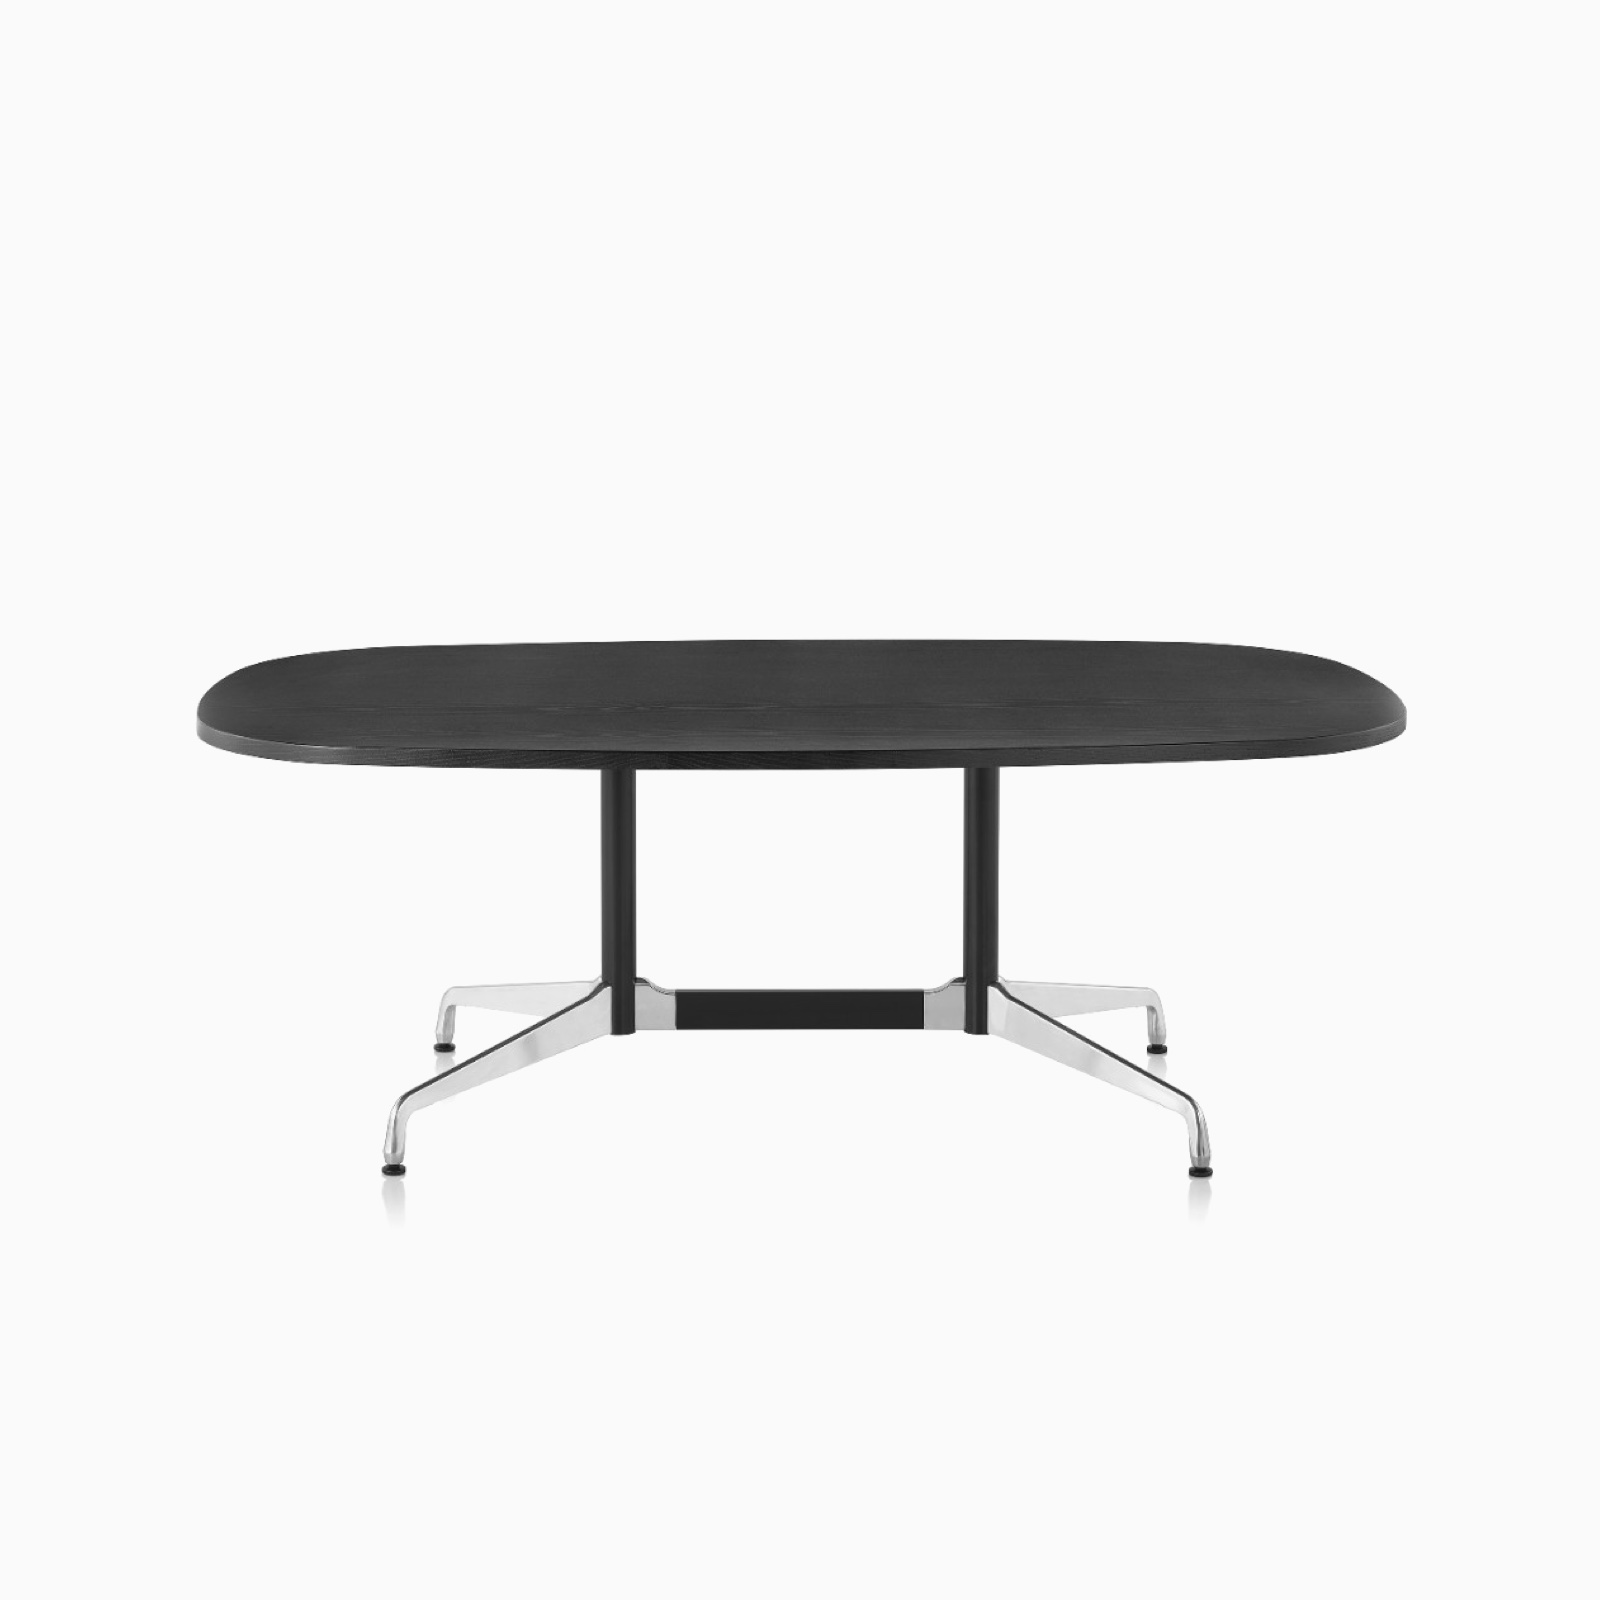 An ebony Eames Oval Conference Table.